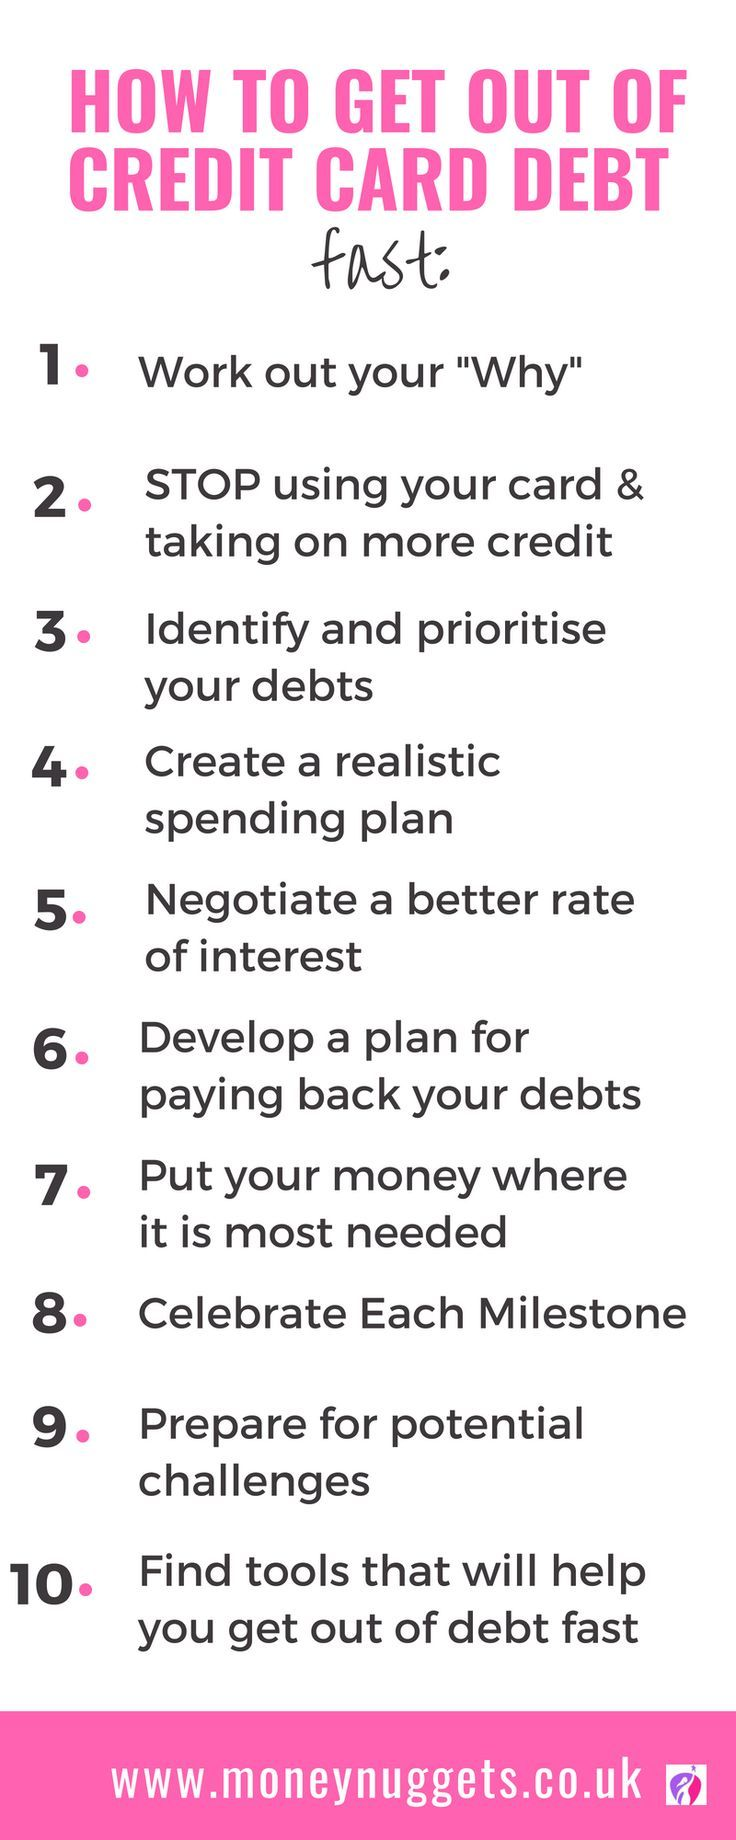 How to get out of credit card debt fast a stepbystep